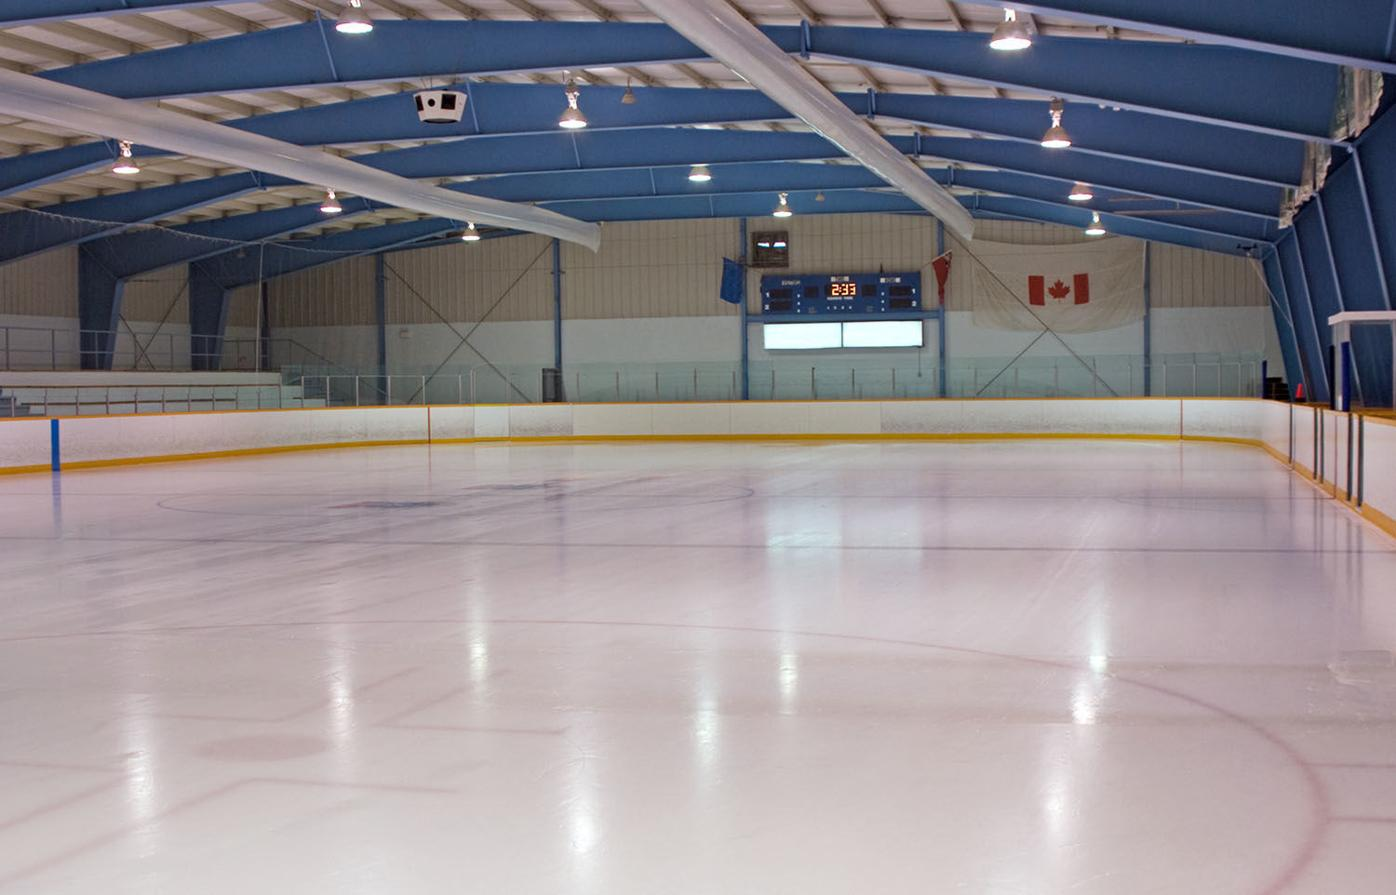 Dr. Mitch Shulman: It's time to get serious and be fair. And why we can't play indoor hockey?